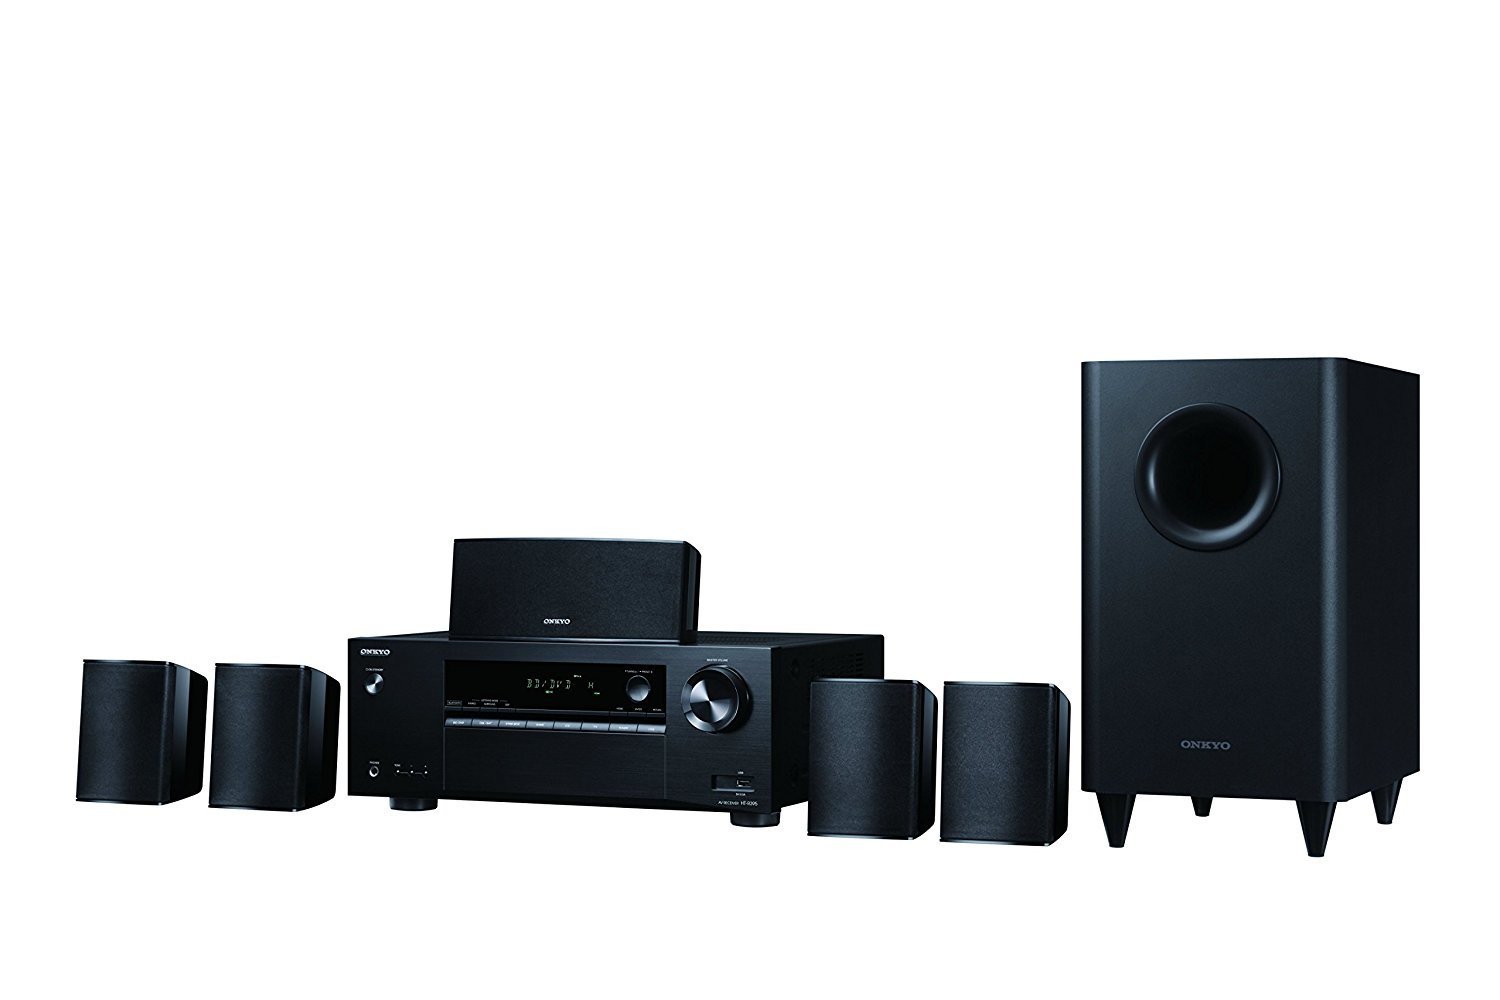 Best Home Cinema Speaker